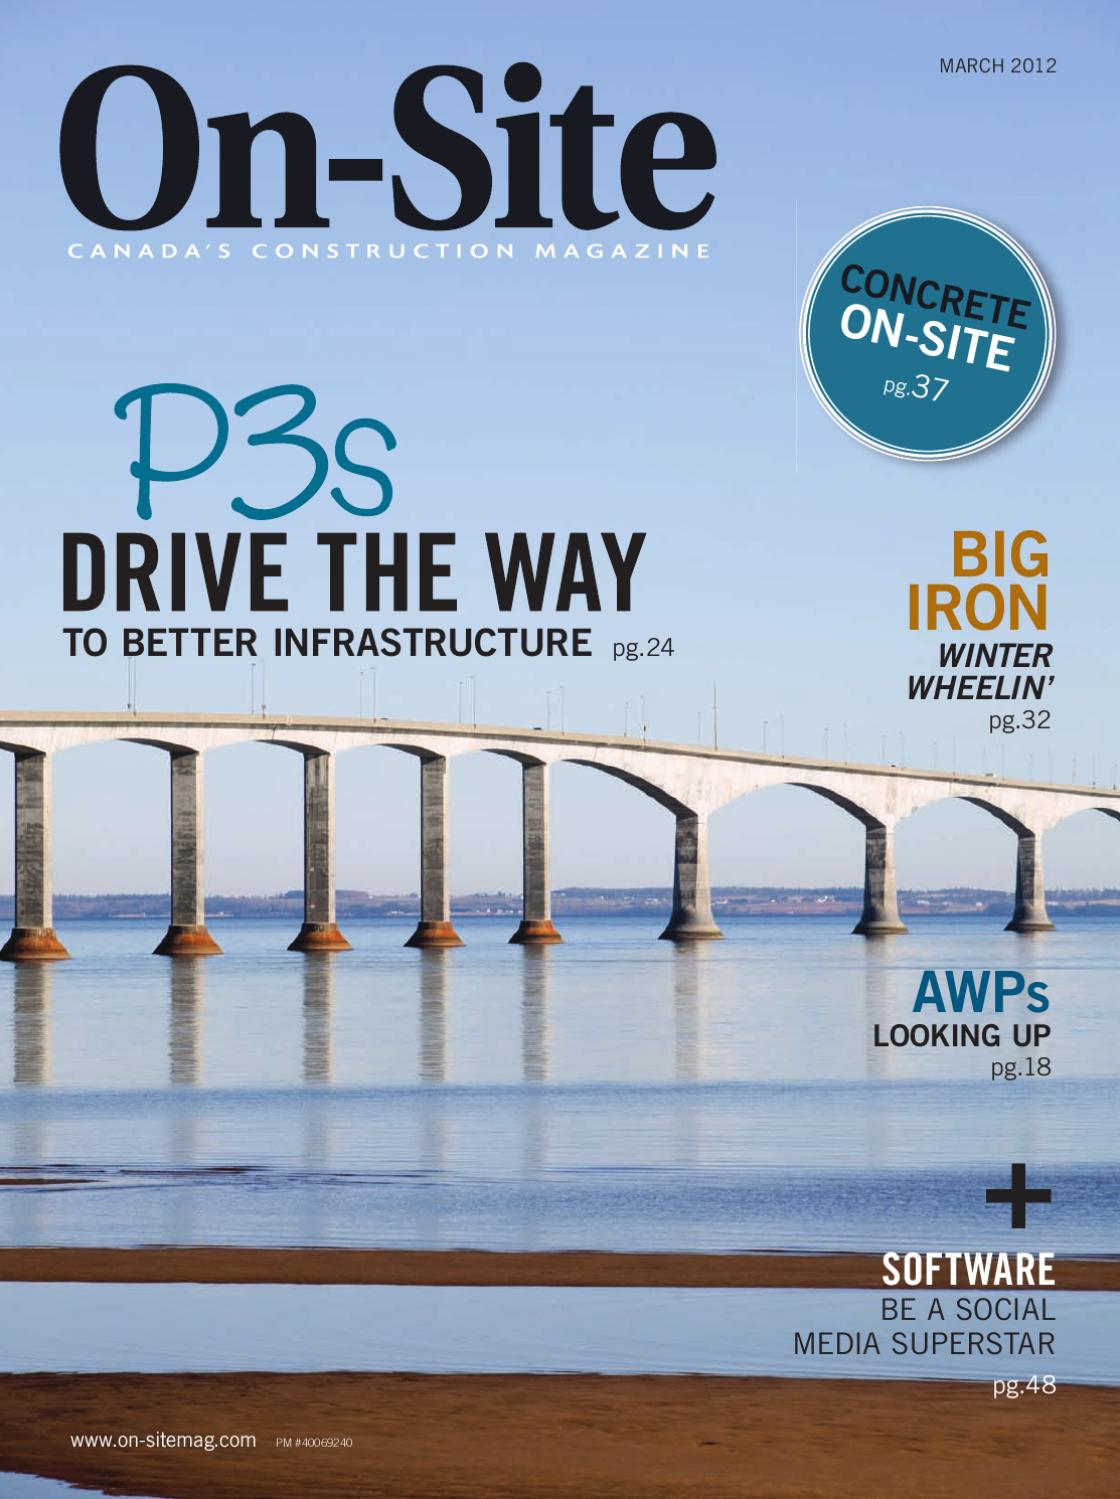 On-Site Magazine March 2012 by Annex Business Media - issuu